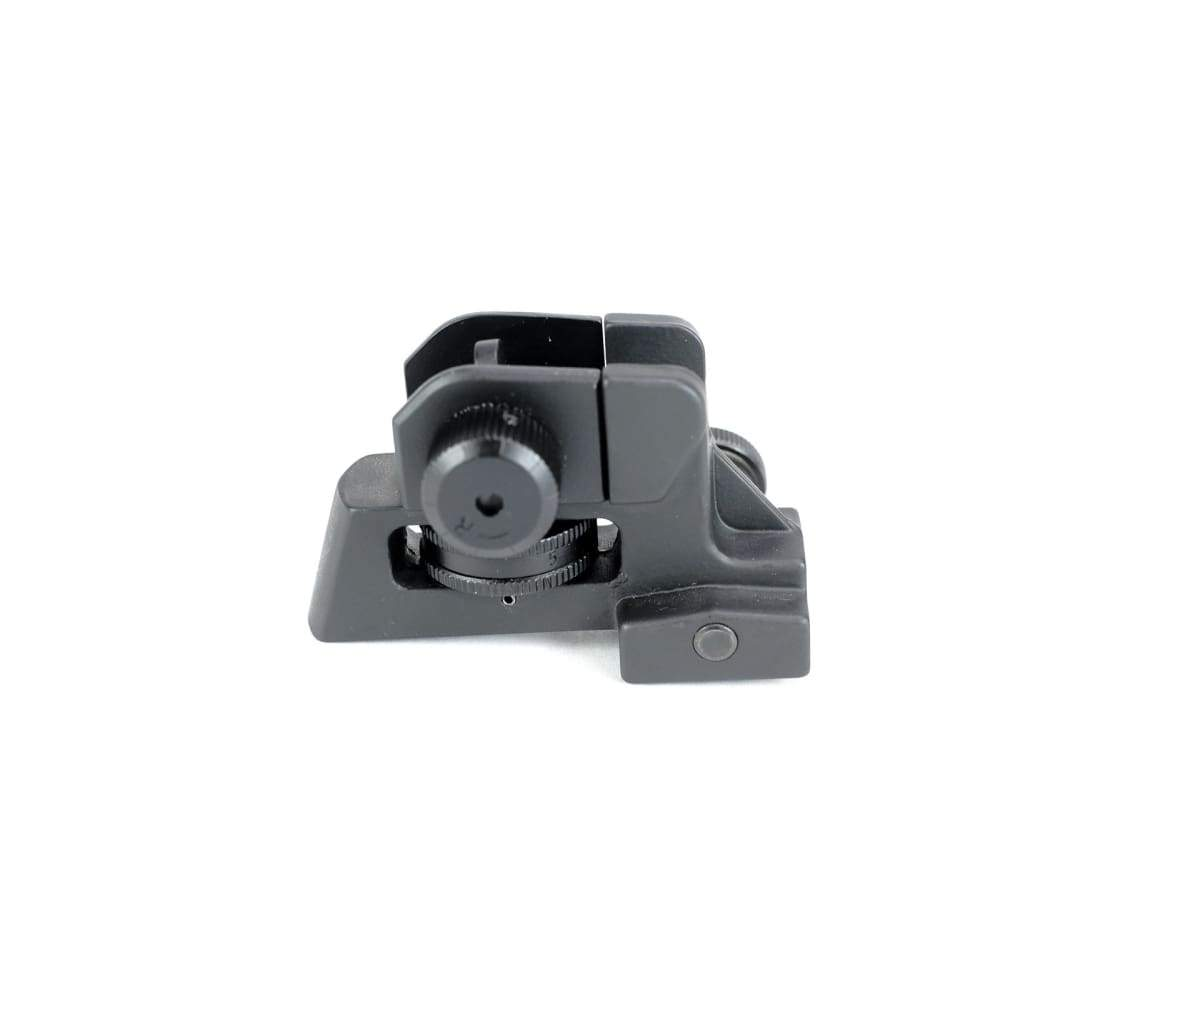 NBS Low Profile Detachable Rear Iron Sight w/ Dual Aperture and Elevation  Adjustments - AR15Discounts